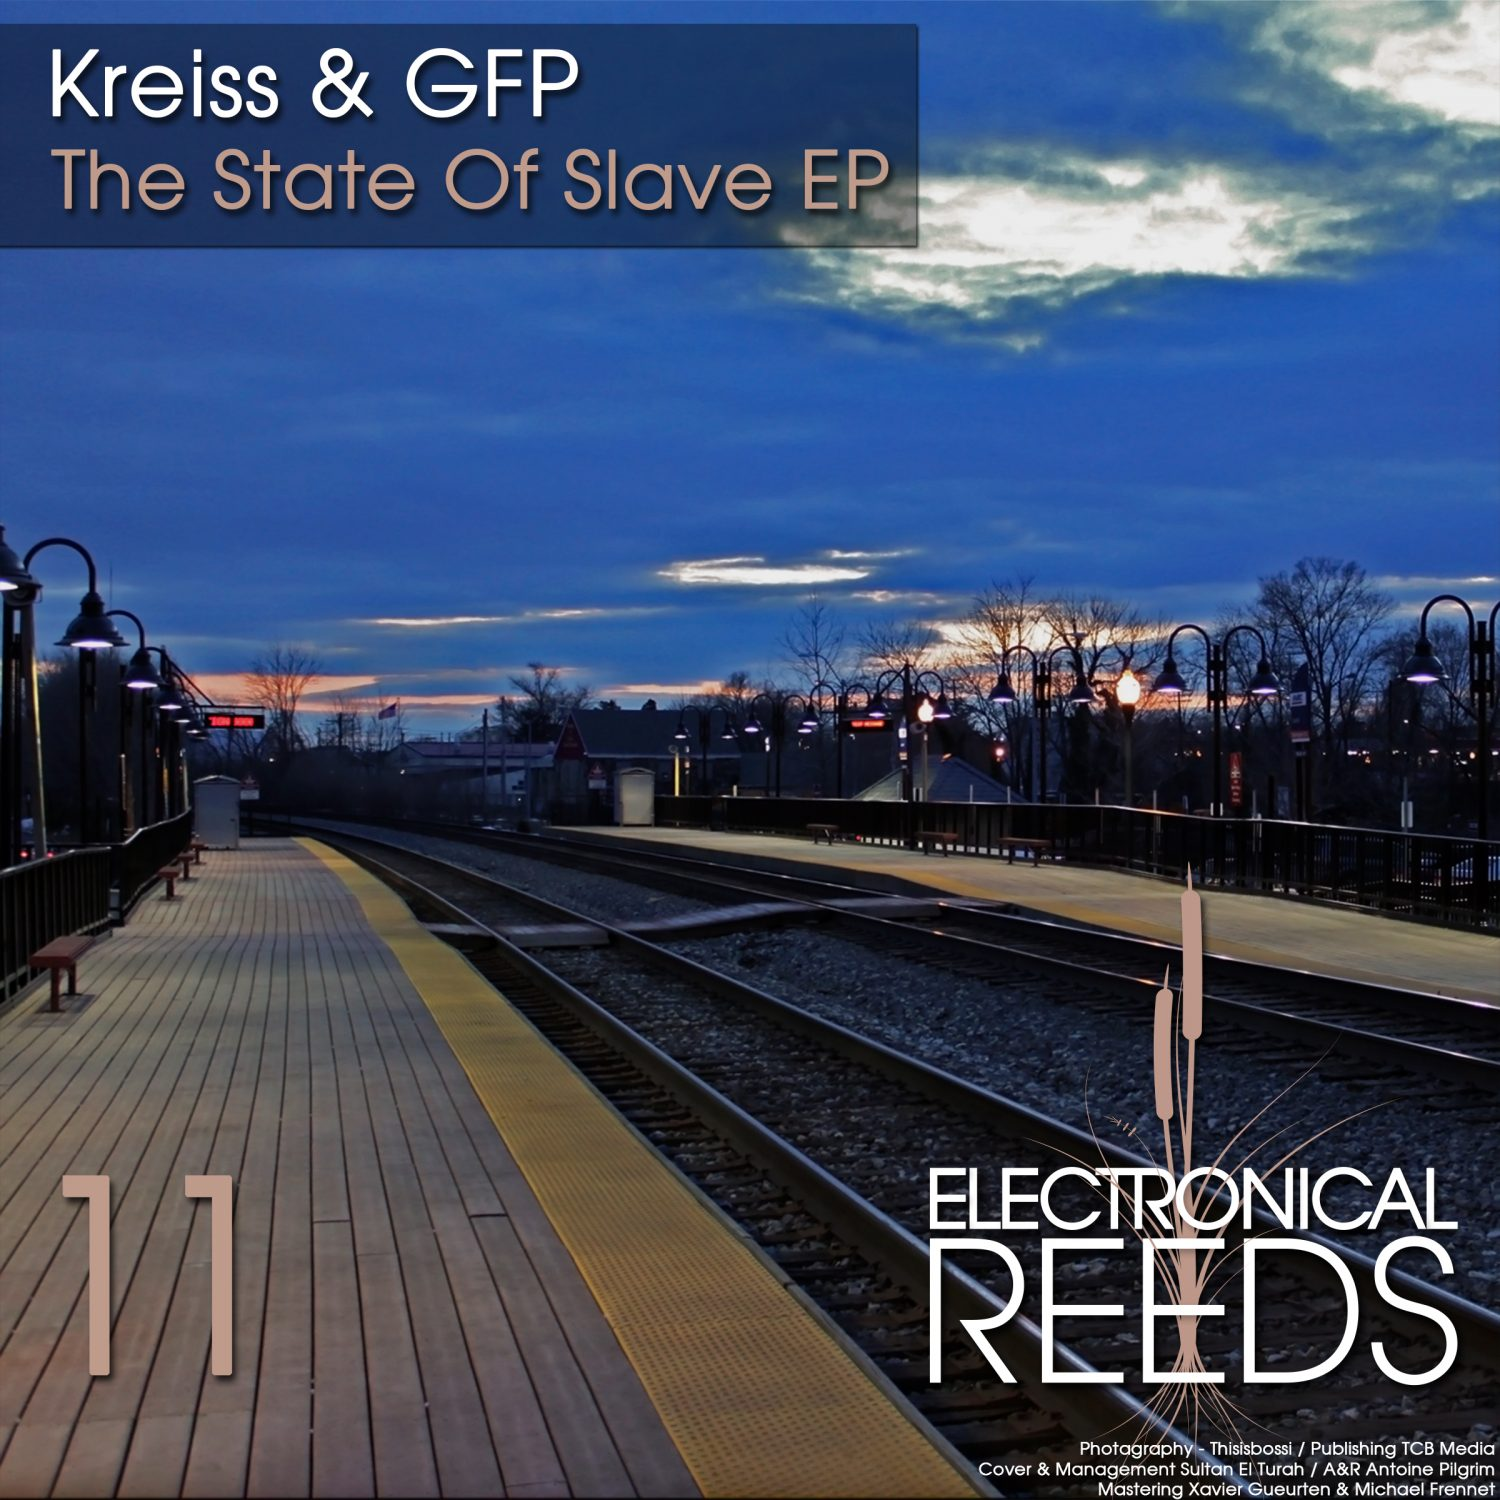 ER011 - Kreiss & GFP - The State Of Slave EP - Electronical Reeds